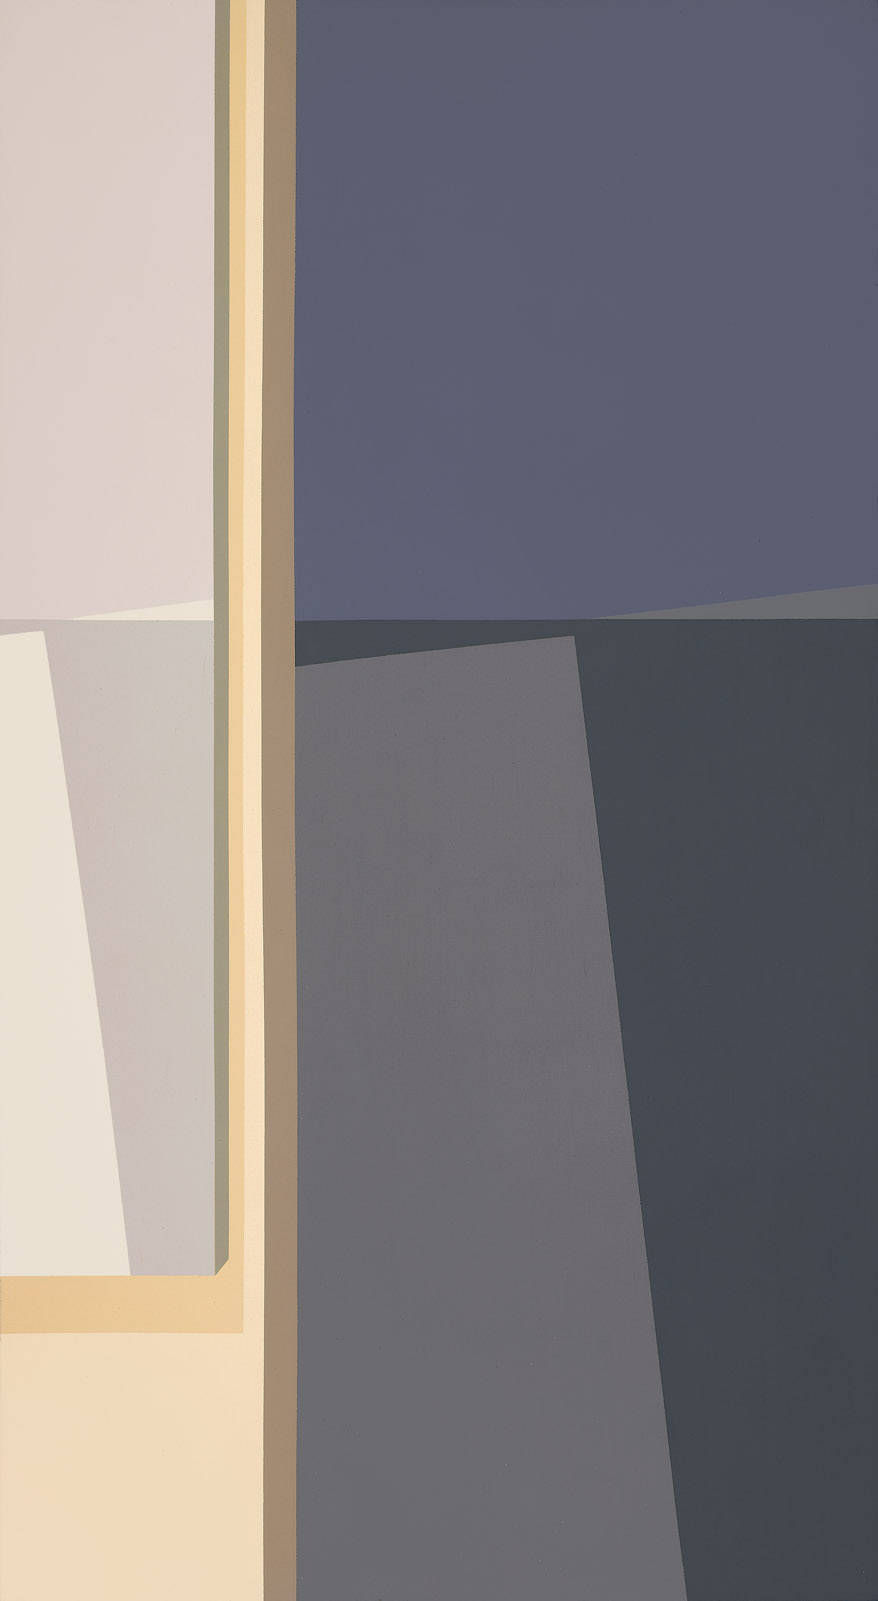 Untitled , 1970  acrylic on canvas 54 x 30 inches; 137.2 x 76.2 centimeters